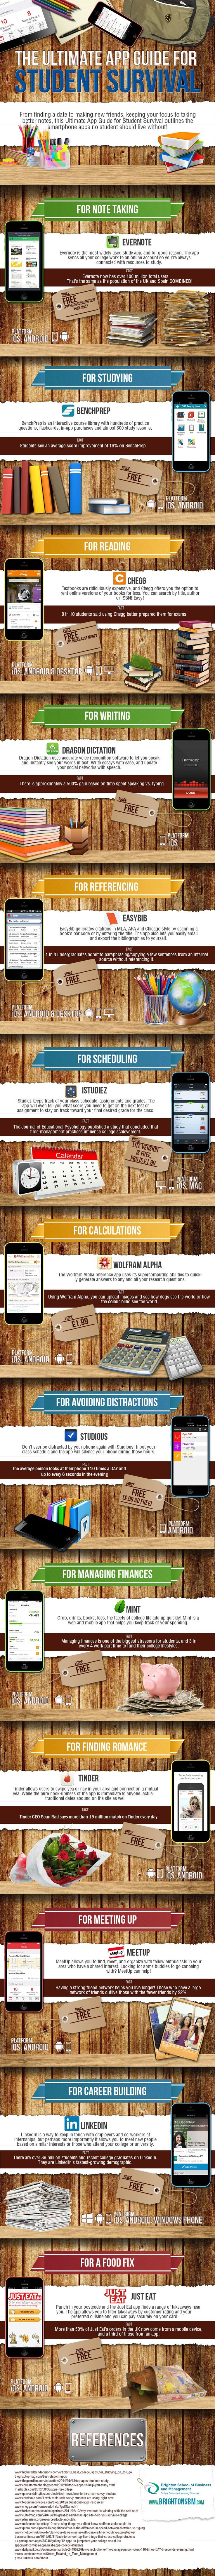 Infographic-App-Guide-for-Student-Survival